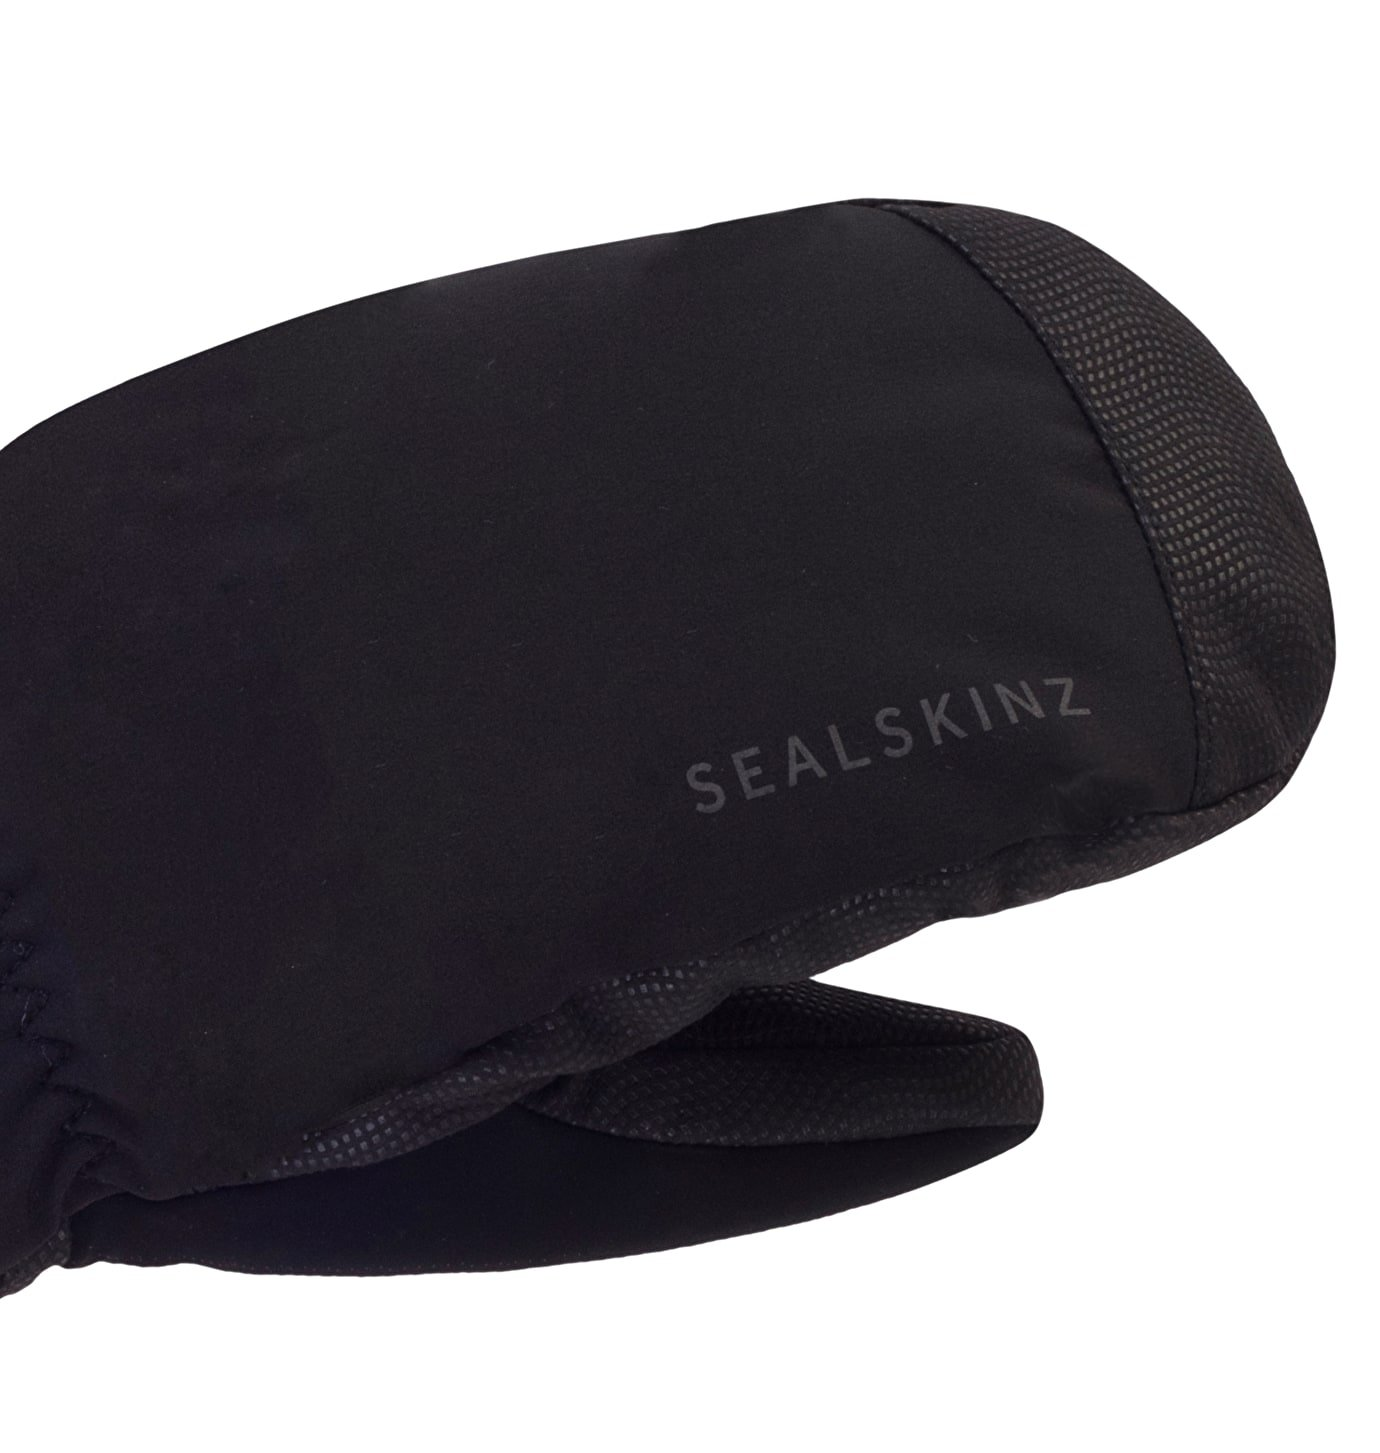 Hiking SEALSKINZ 100 Percent Waterproof Womens Mitten Camping in All Weather Conditions Windproof and Breathable Suitable for Walking